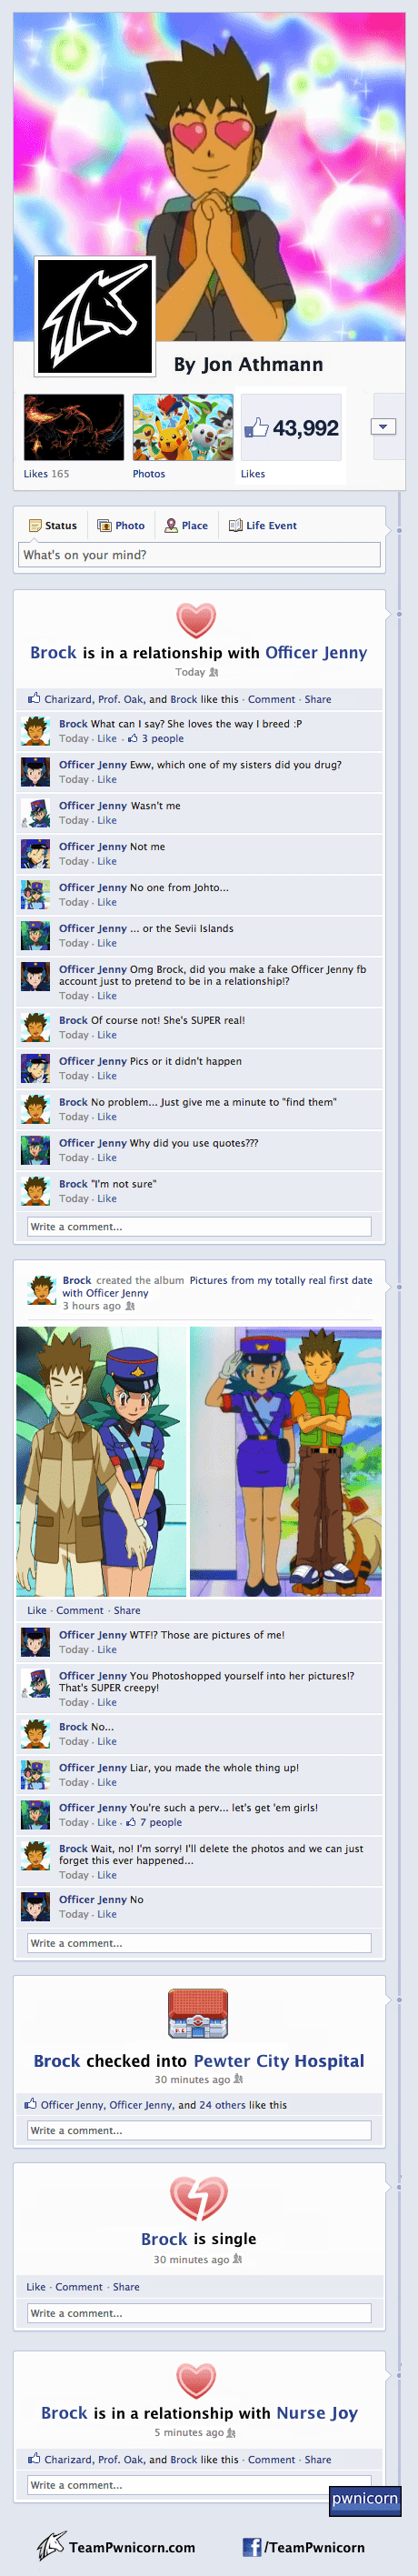 brock Pokémon facebook officer jenny funny - 7443831296